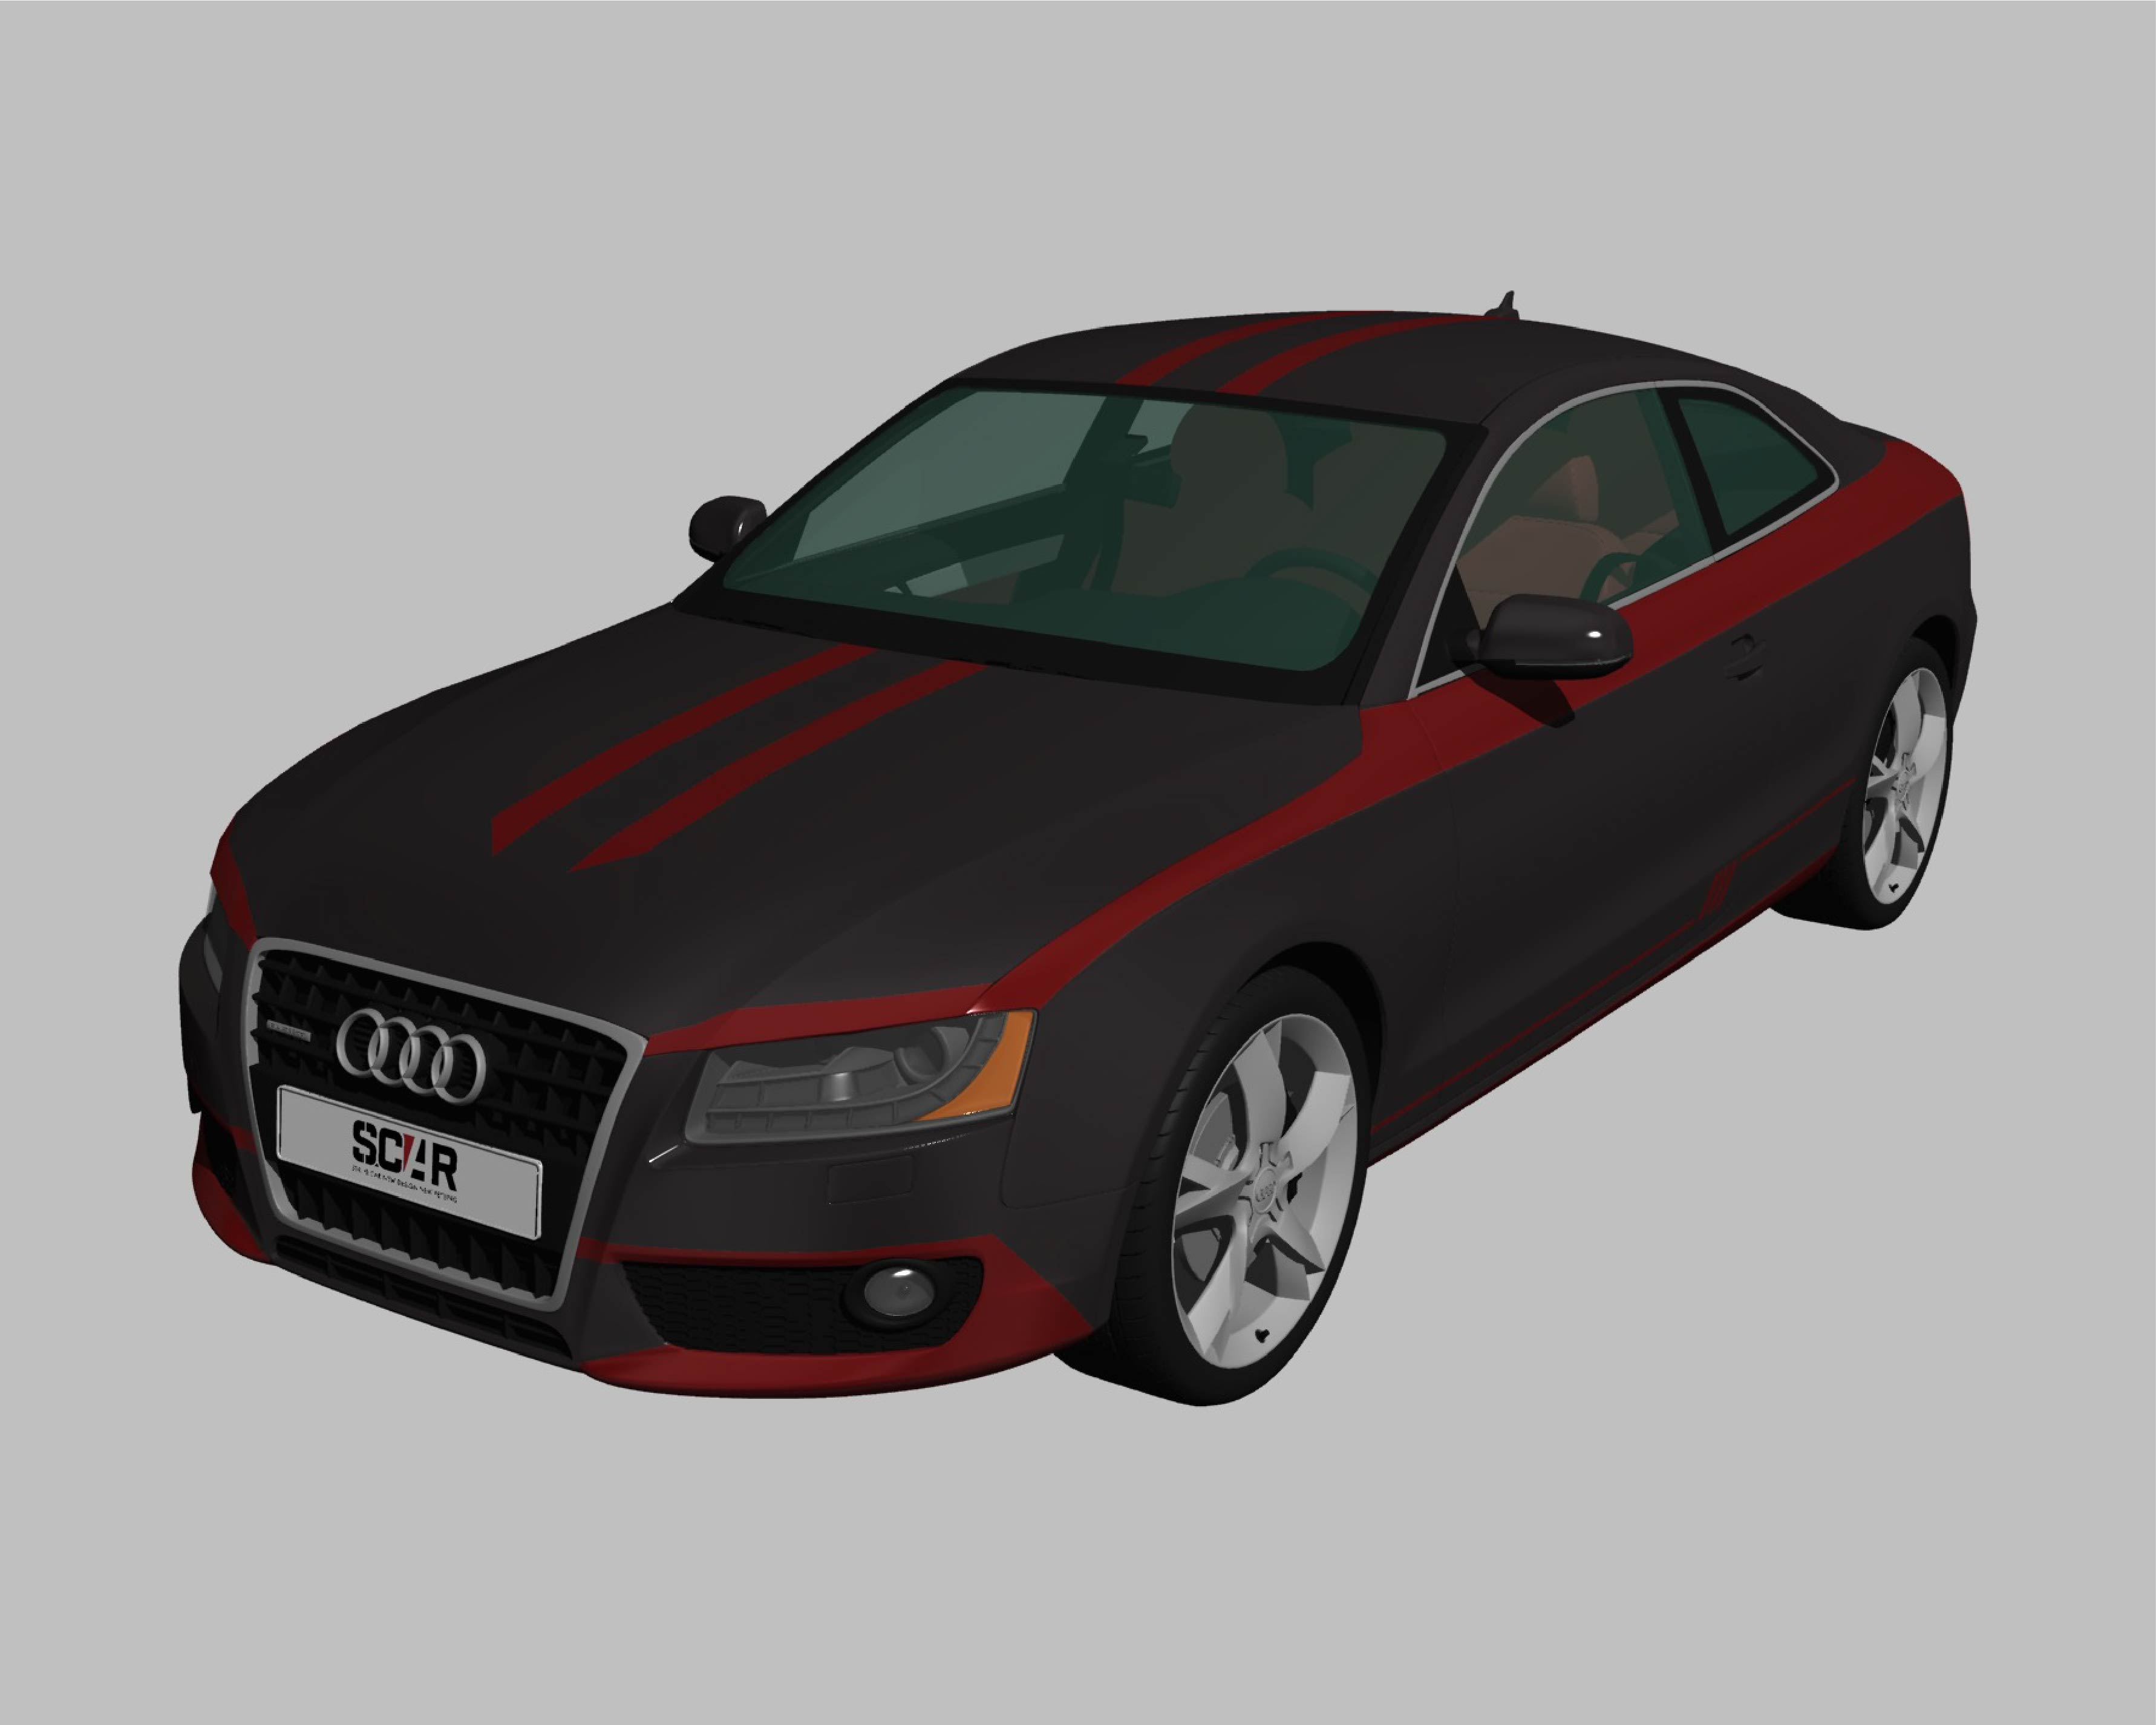 AUDI_A5_COUPE_2010/ カーラッピング #C1027